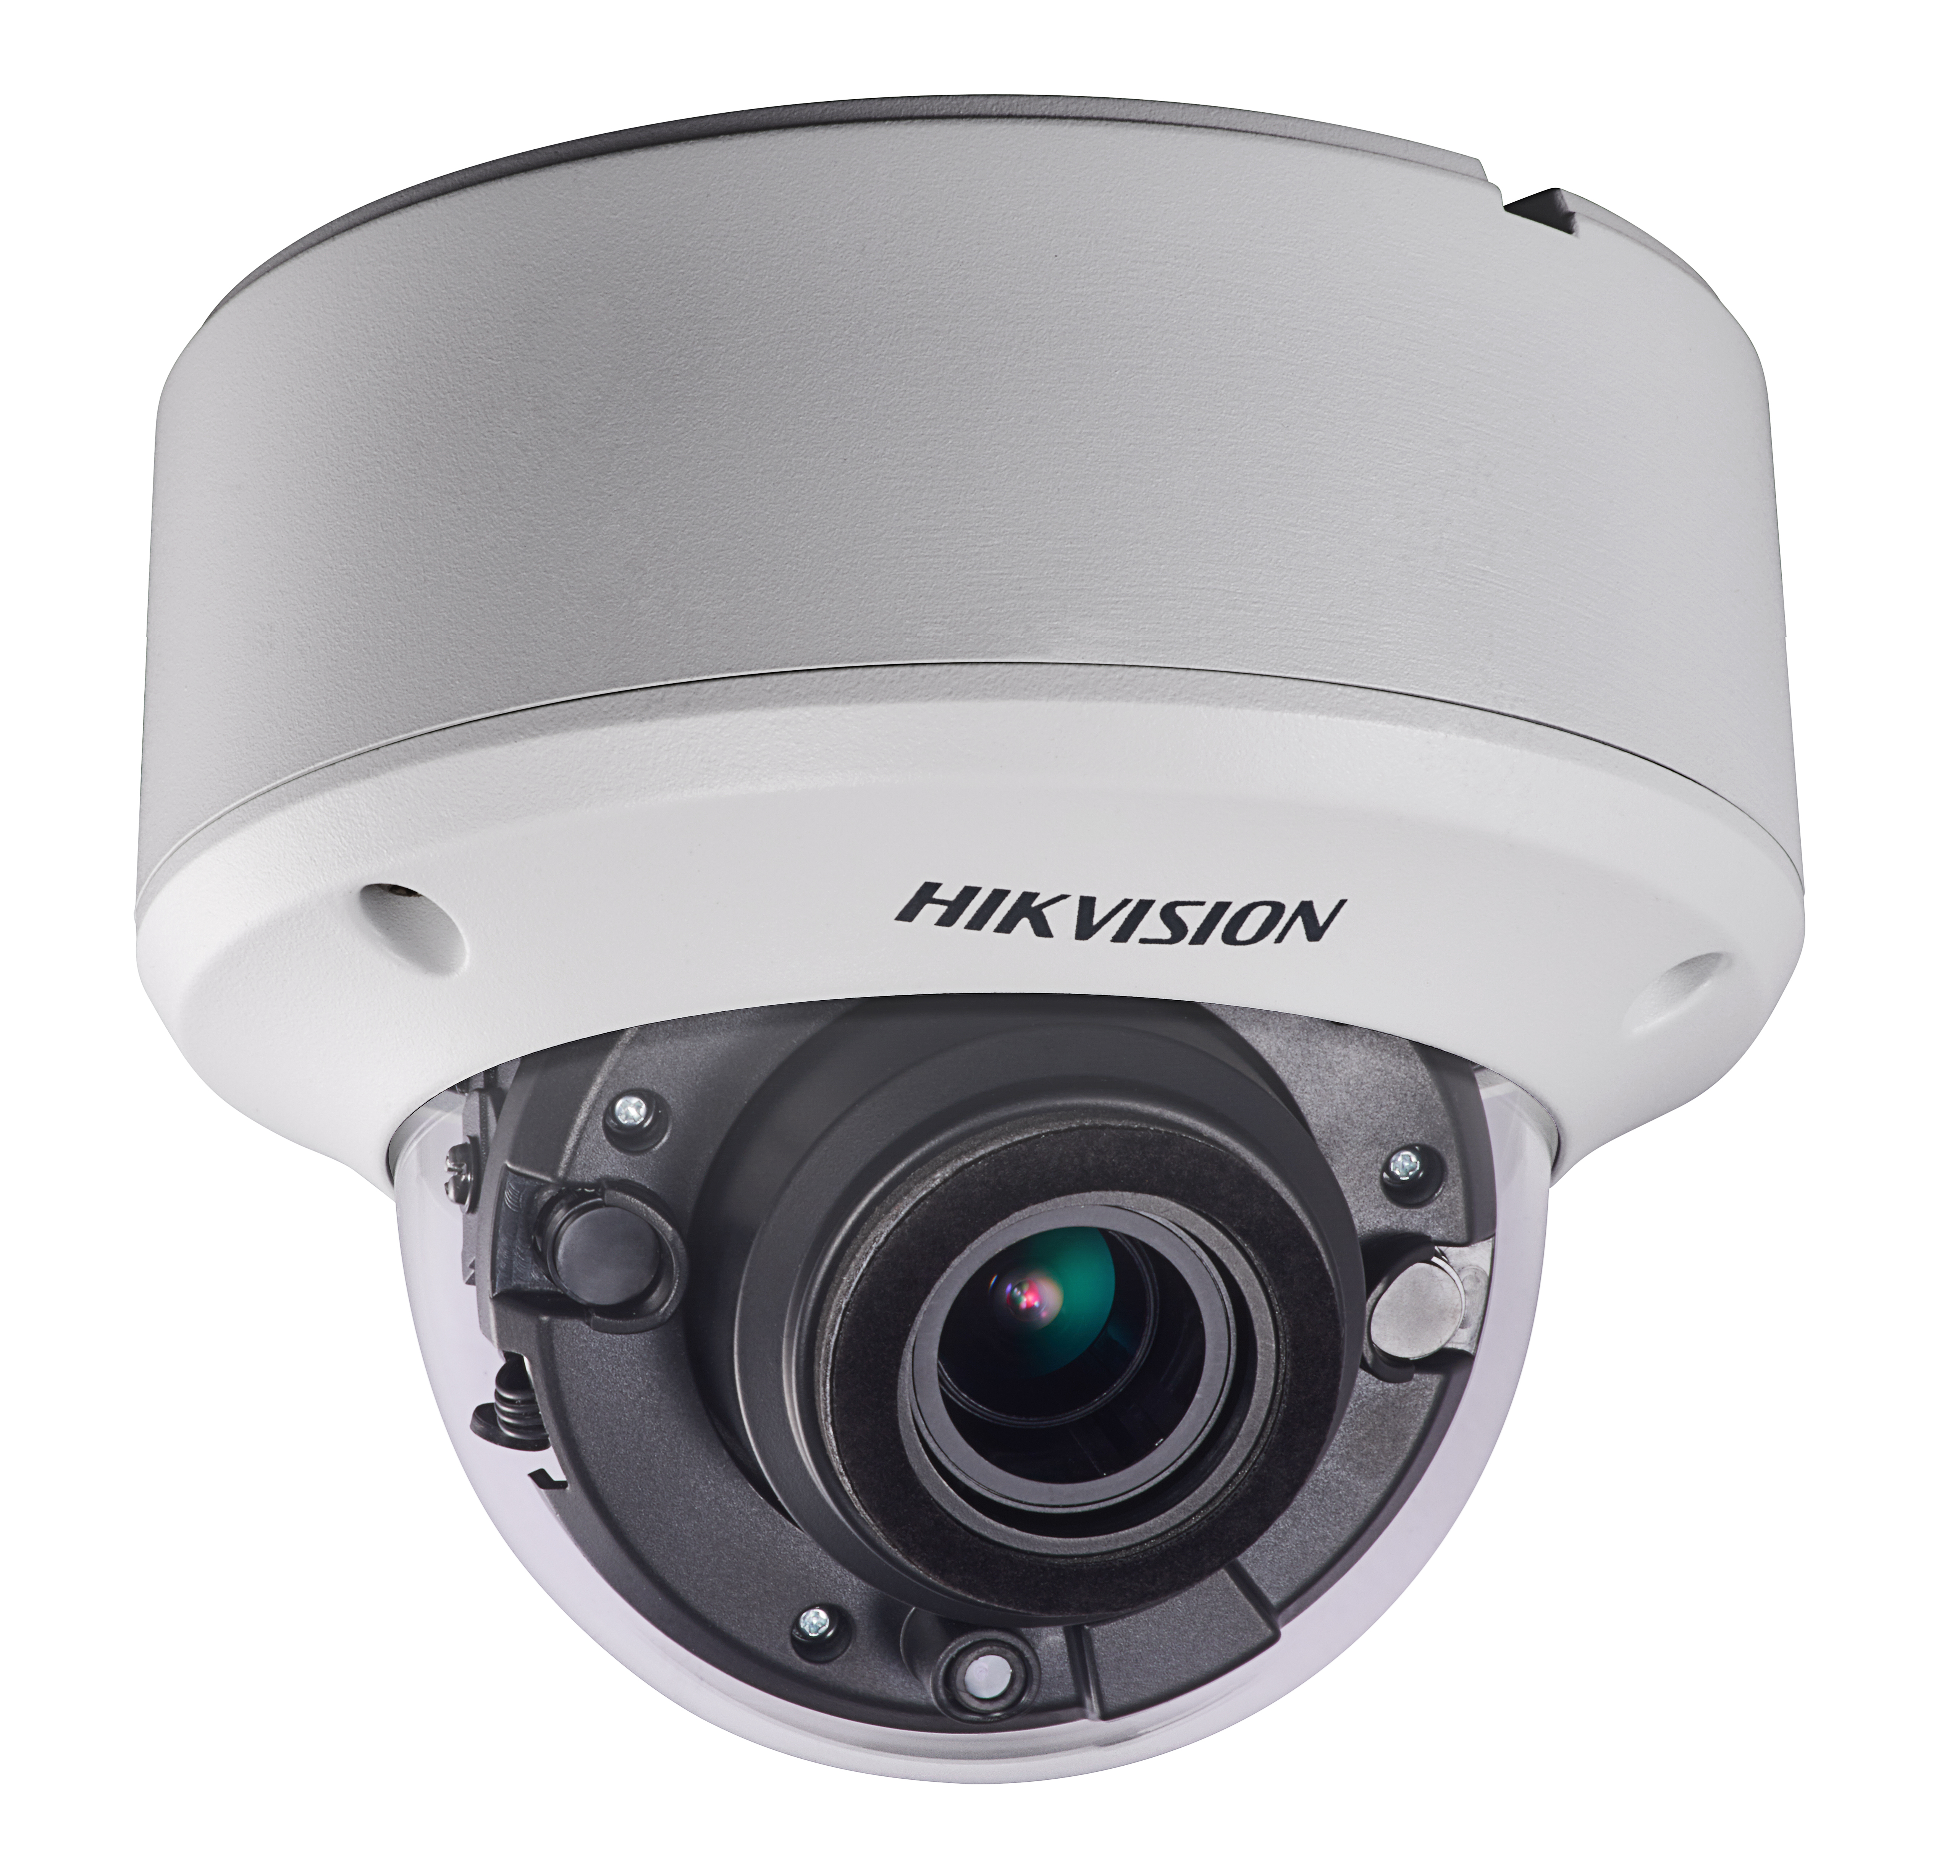 HD 1080p WDR Vandal Proof EXIR Dome Camera